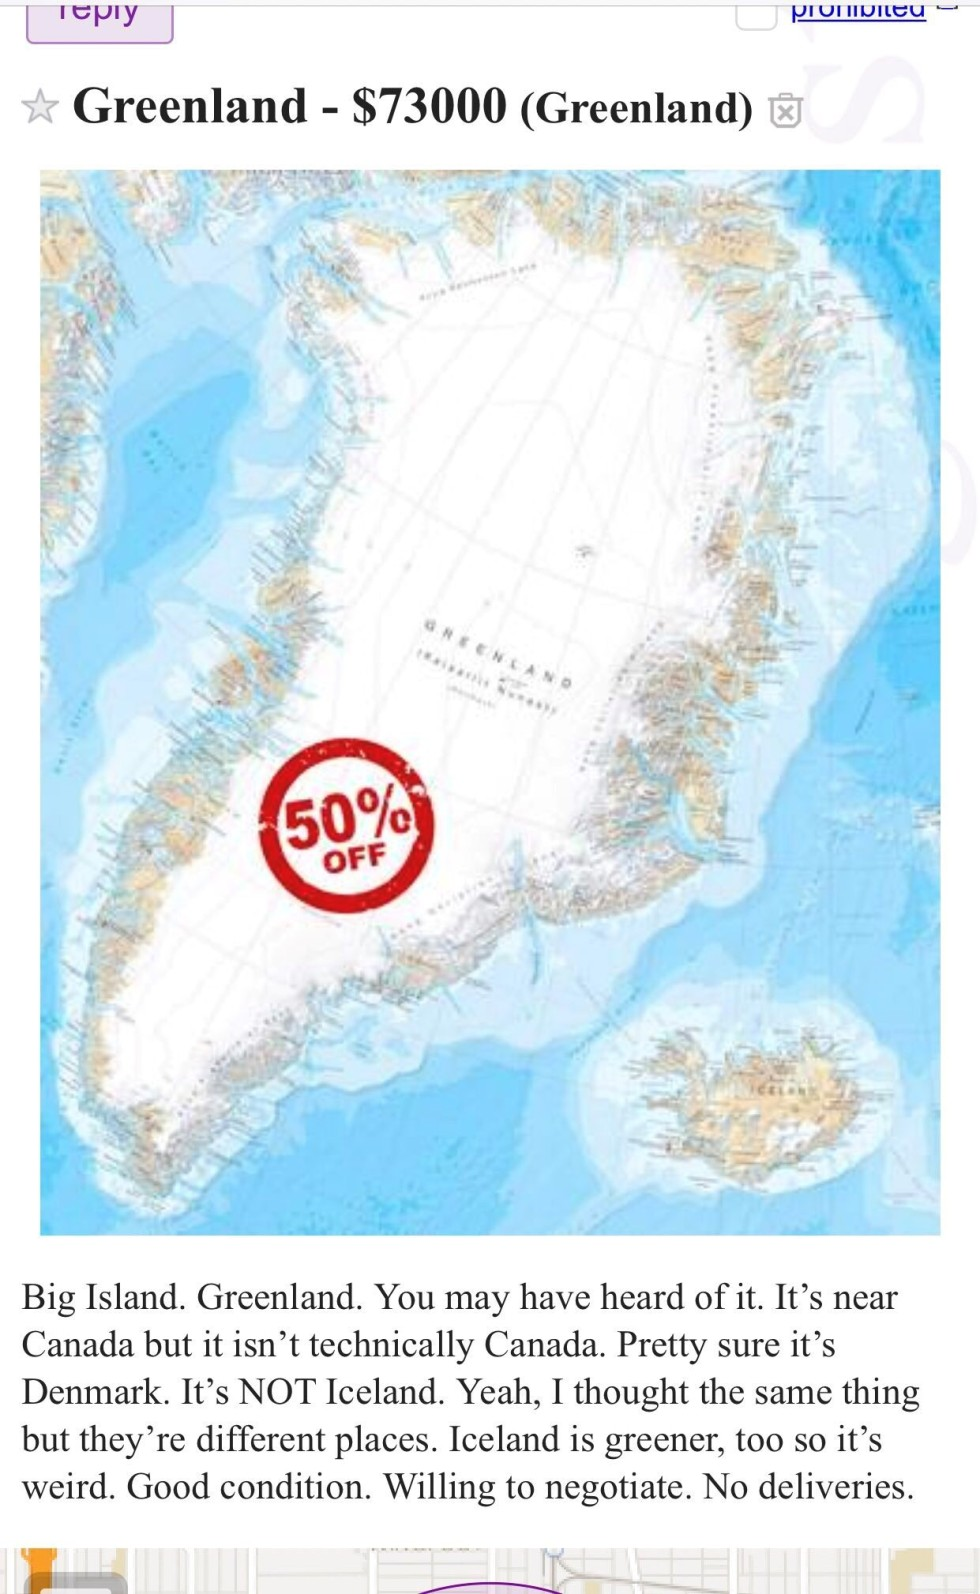 greenland on sale.jpg